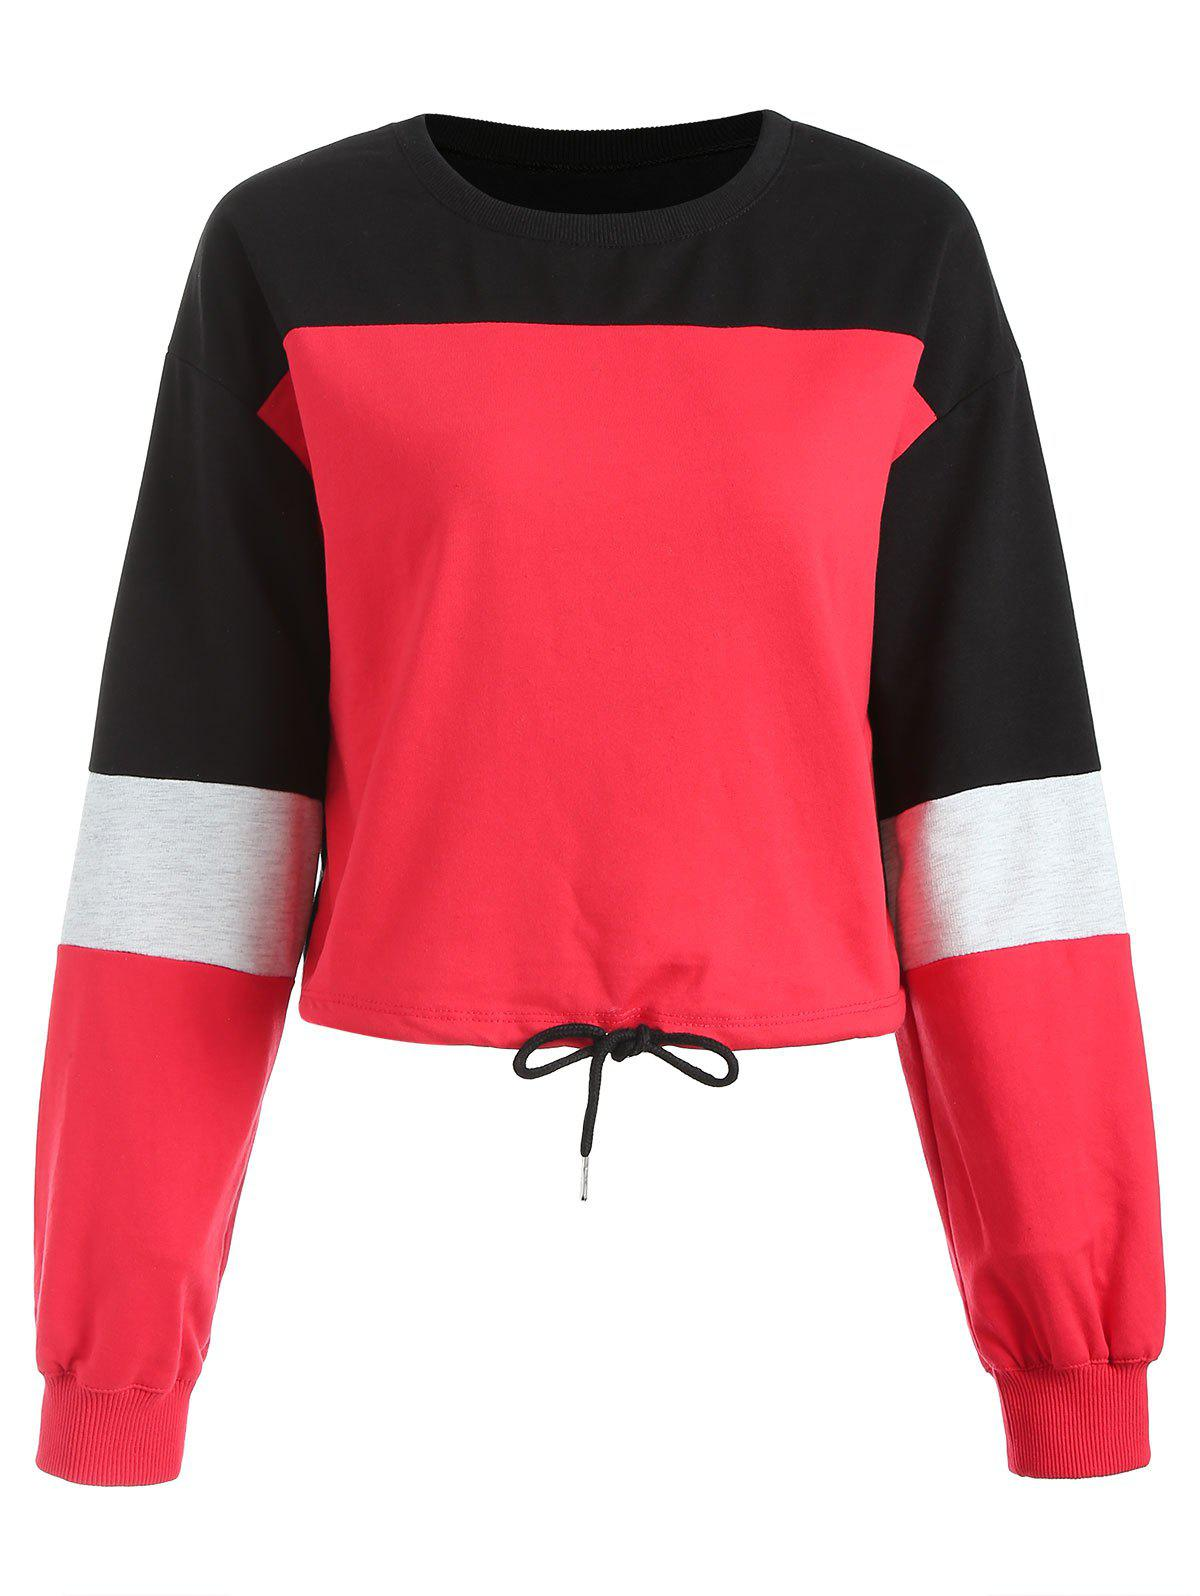 Contrast Color Cropped Sweatshirt - RED XL